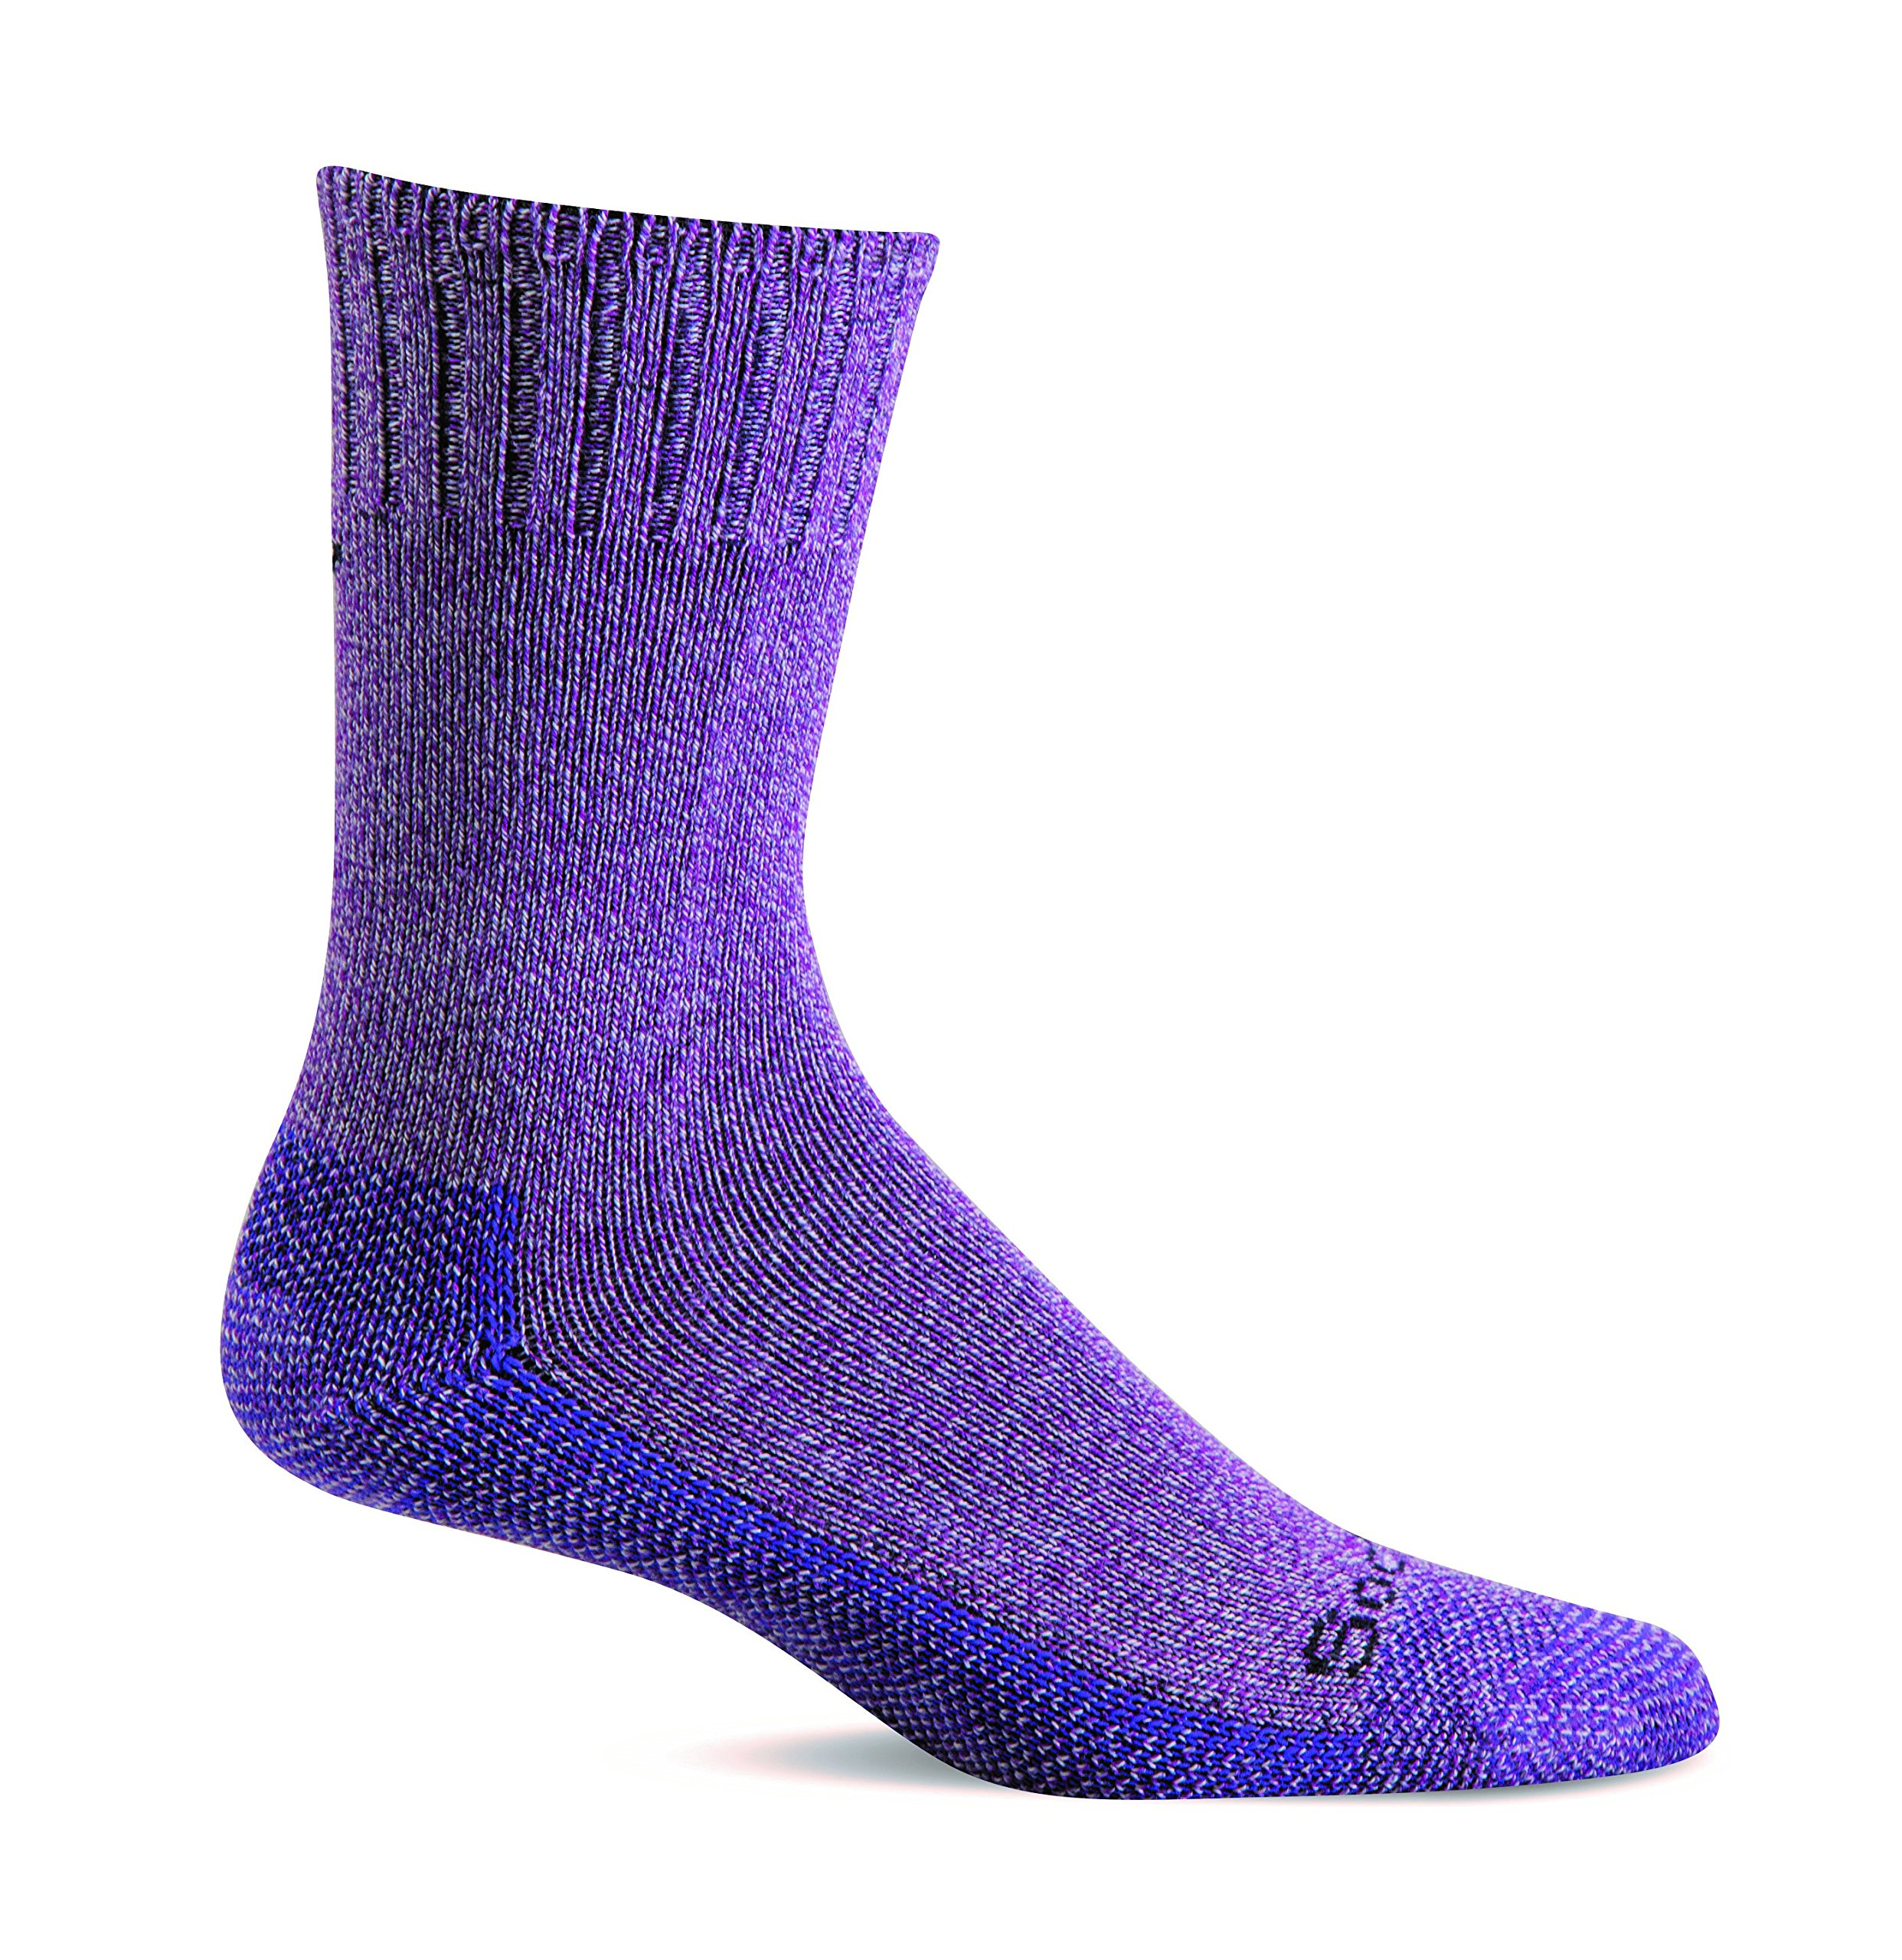 Sockwell Women's Relaxed Fit Big Easy Socks (Violet Marl, M/L)